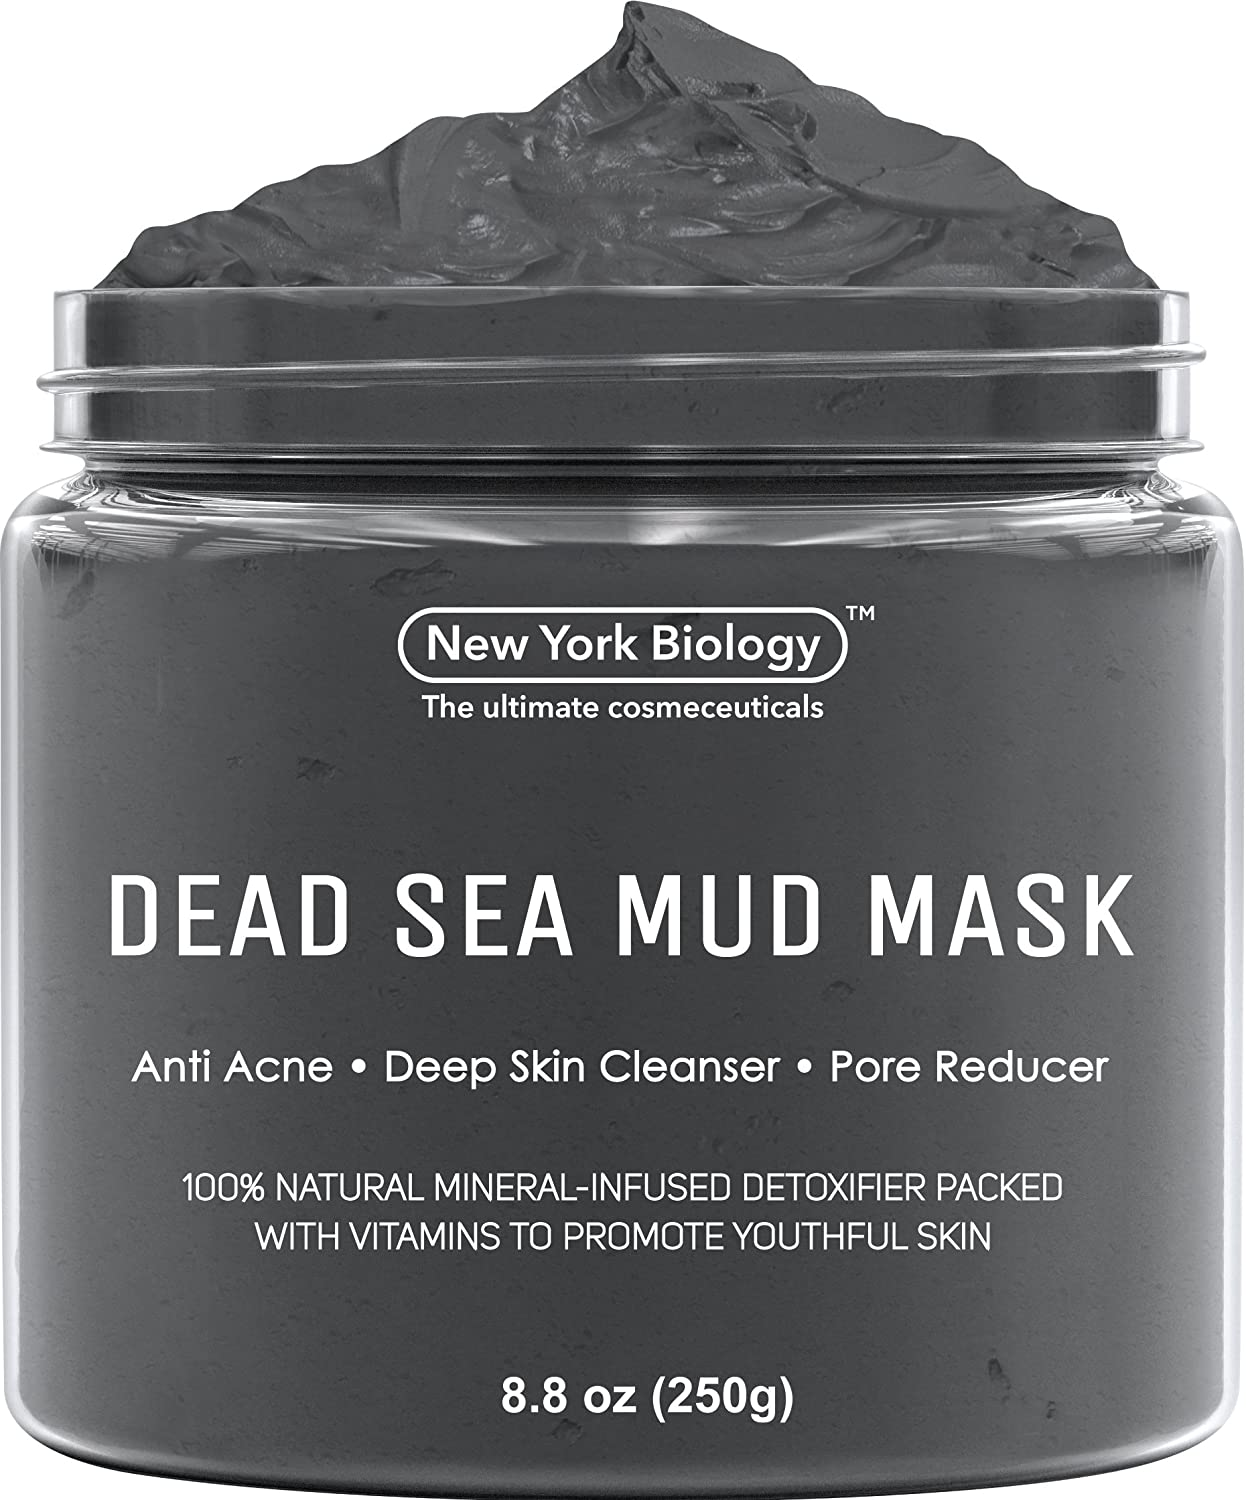 Dead Sea Mud Mask For Face & Body   100 Percents Natural Spa Quality   Best Pore Reducer & Minimizer To Help Treat Acne , Blackheads & Oily Skin – Tightens Skin... by New York Biology